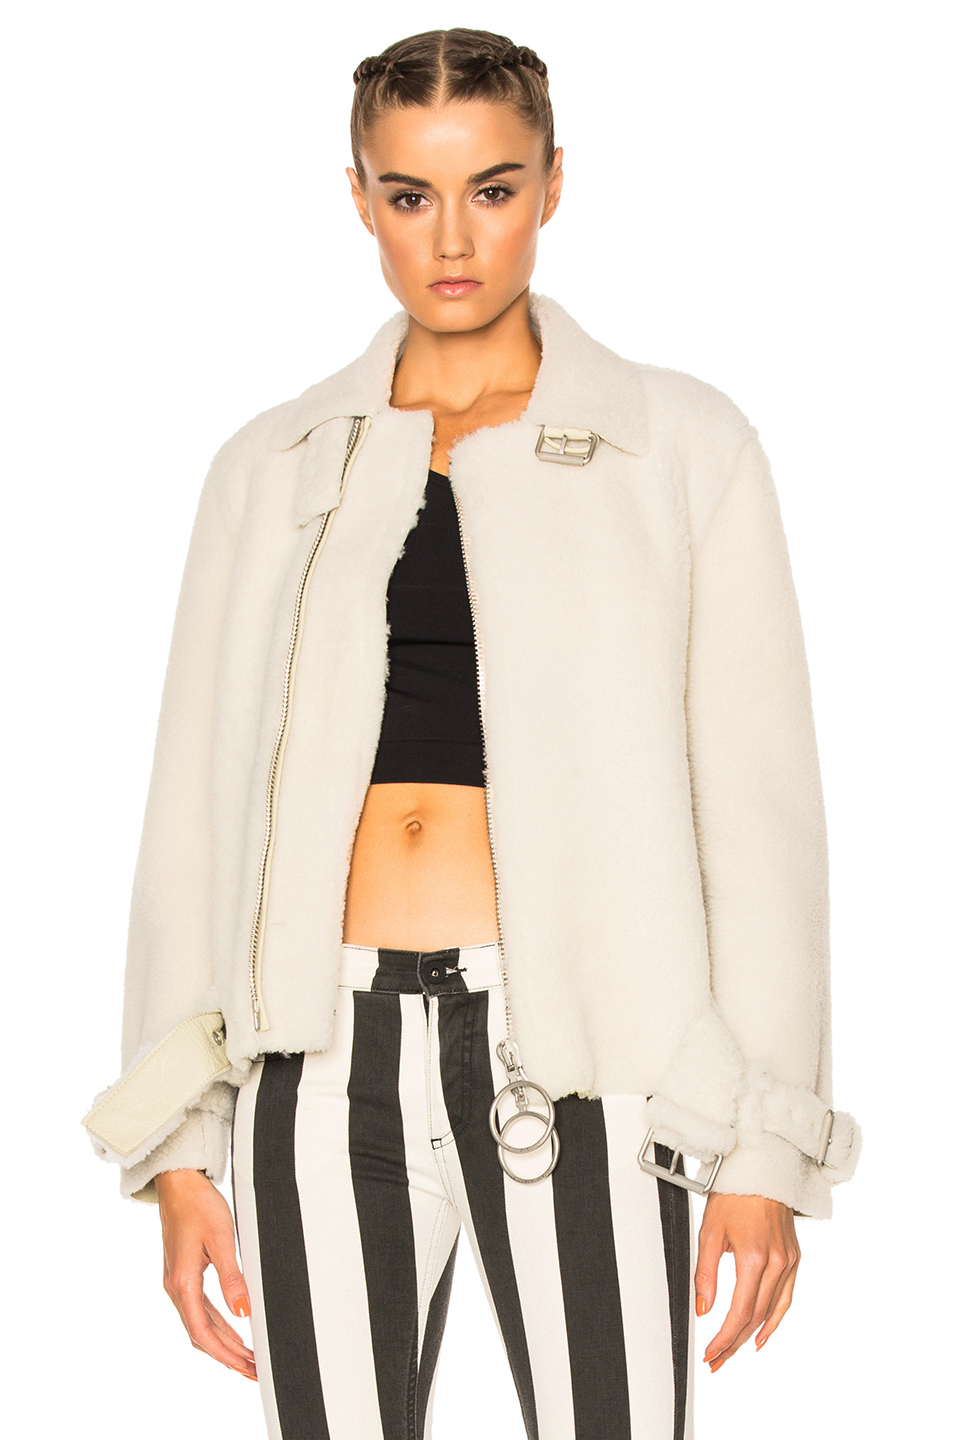 OFF-WHITE Shearling Fur Jacket in White